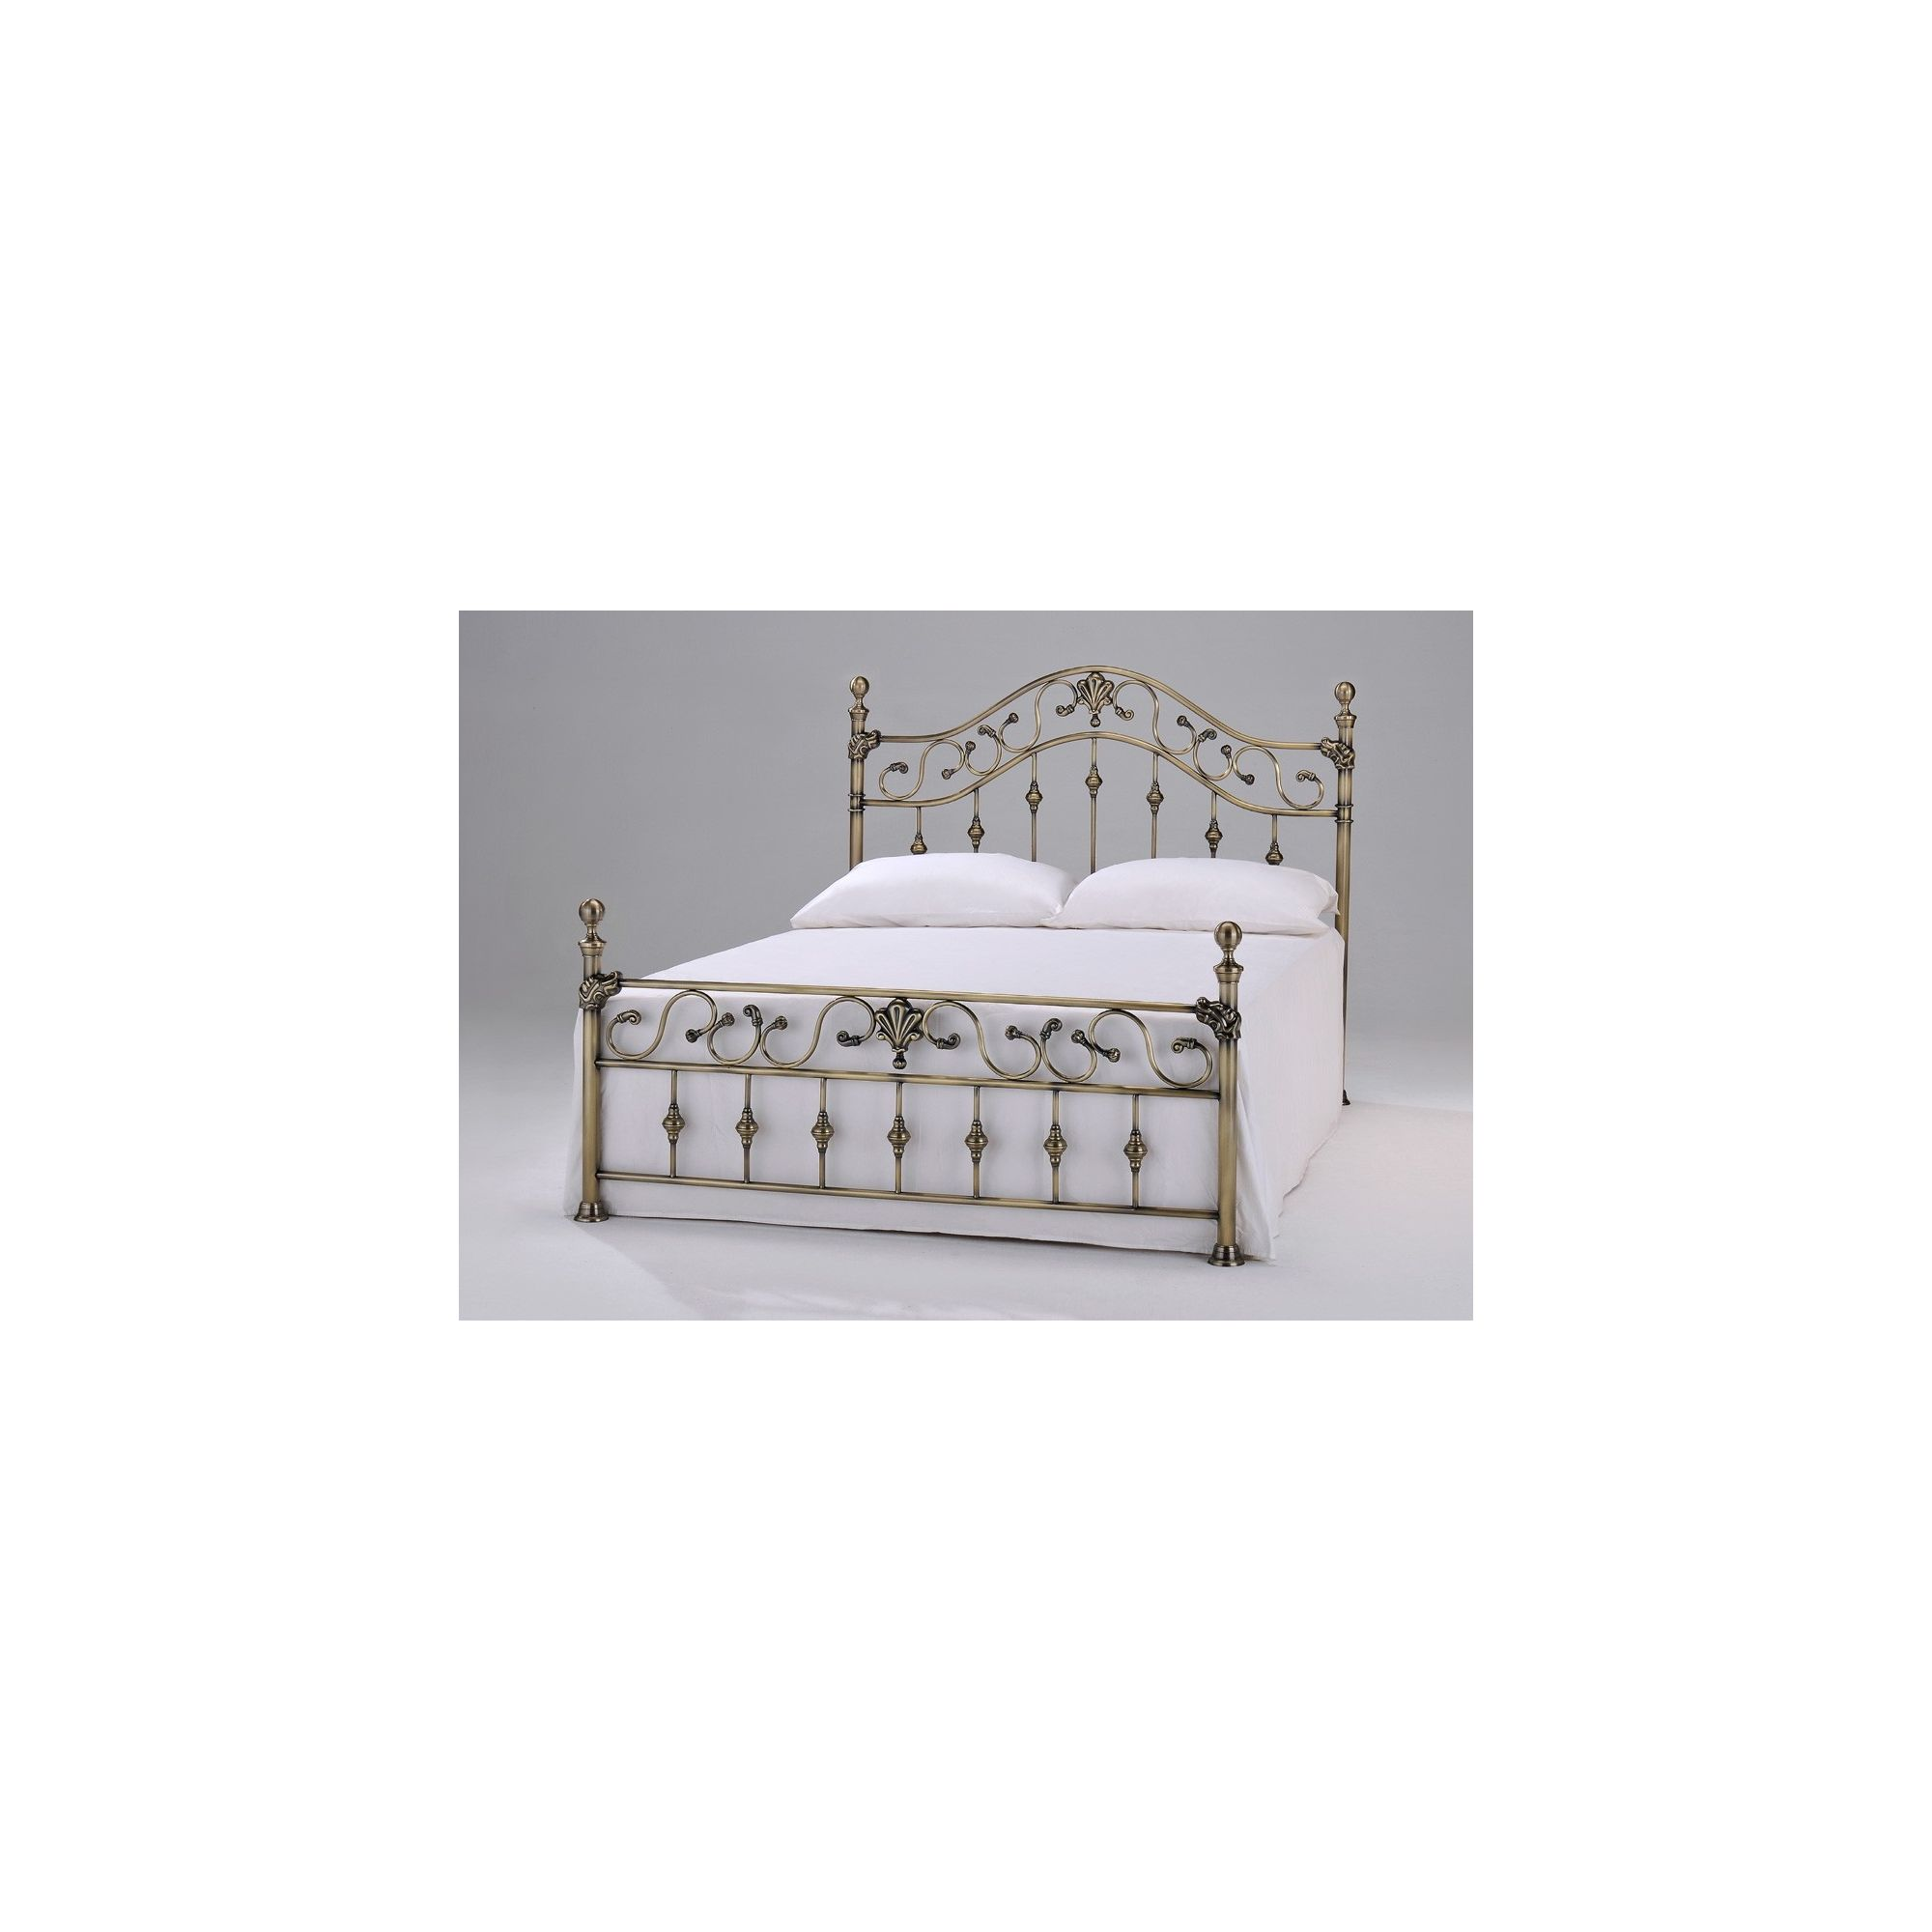 Interiors 2 suit Elizabeth Brass Bed - King - Crystal at Tesco Direct